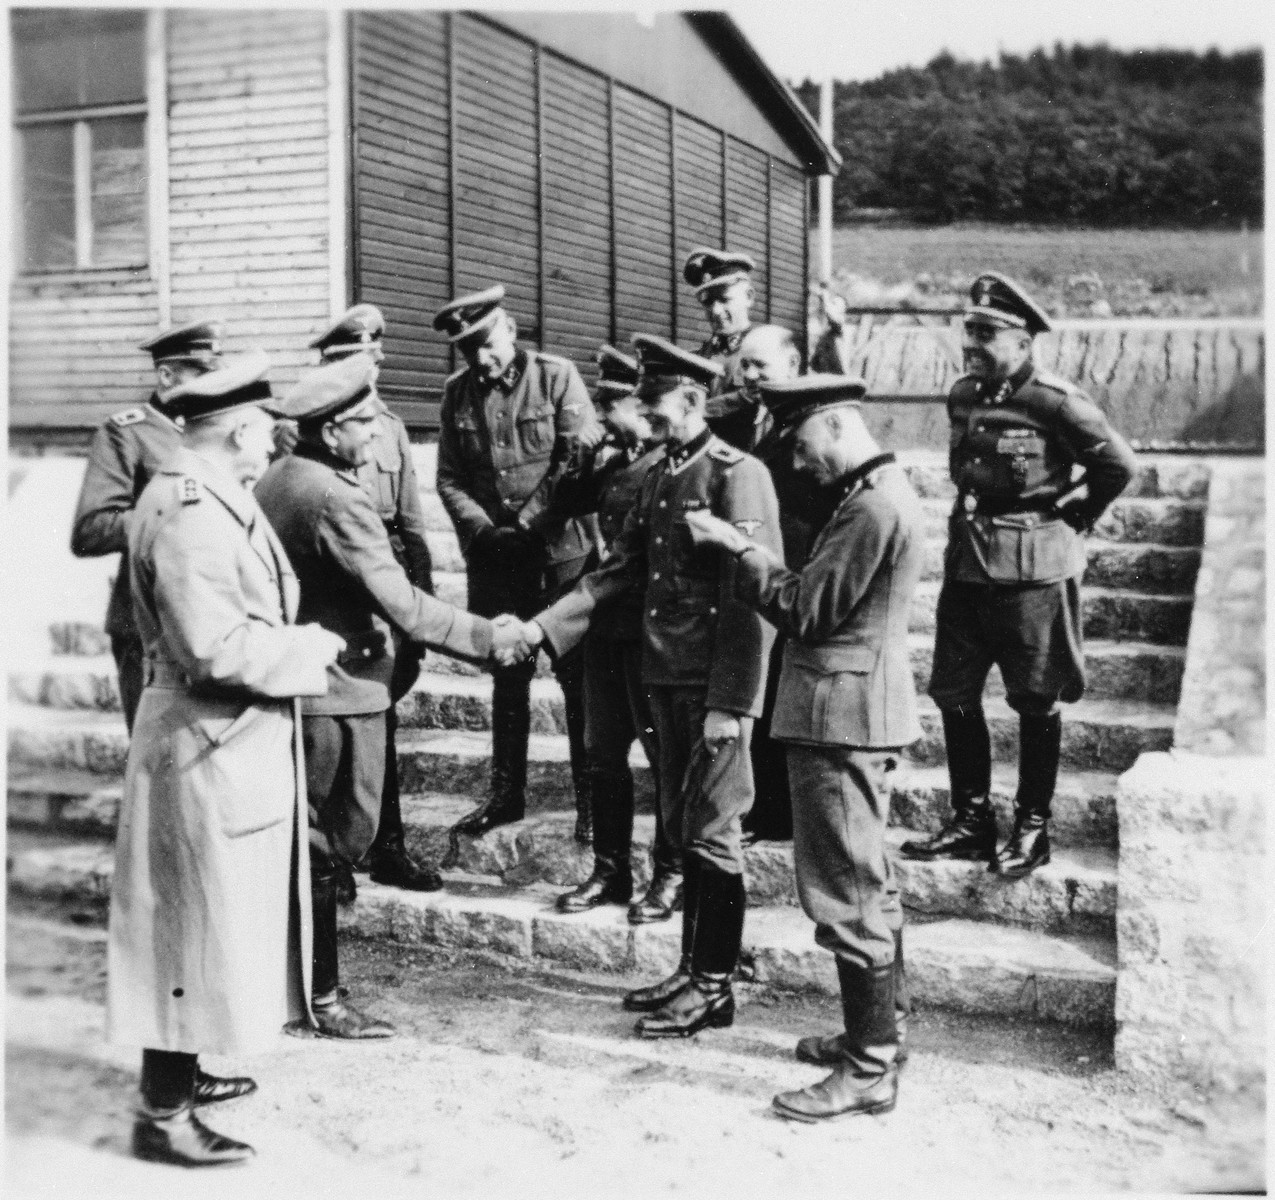 SS officers in Gross-Rosen bid farewell to SS platoon commander Hafer (who was responsible for building).